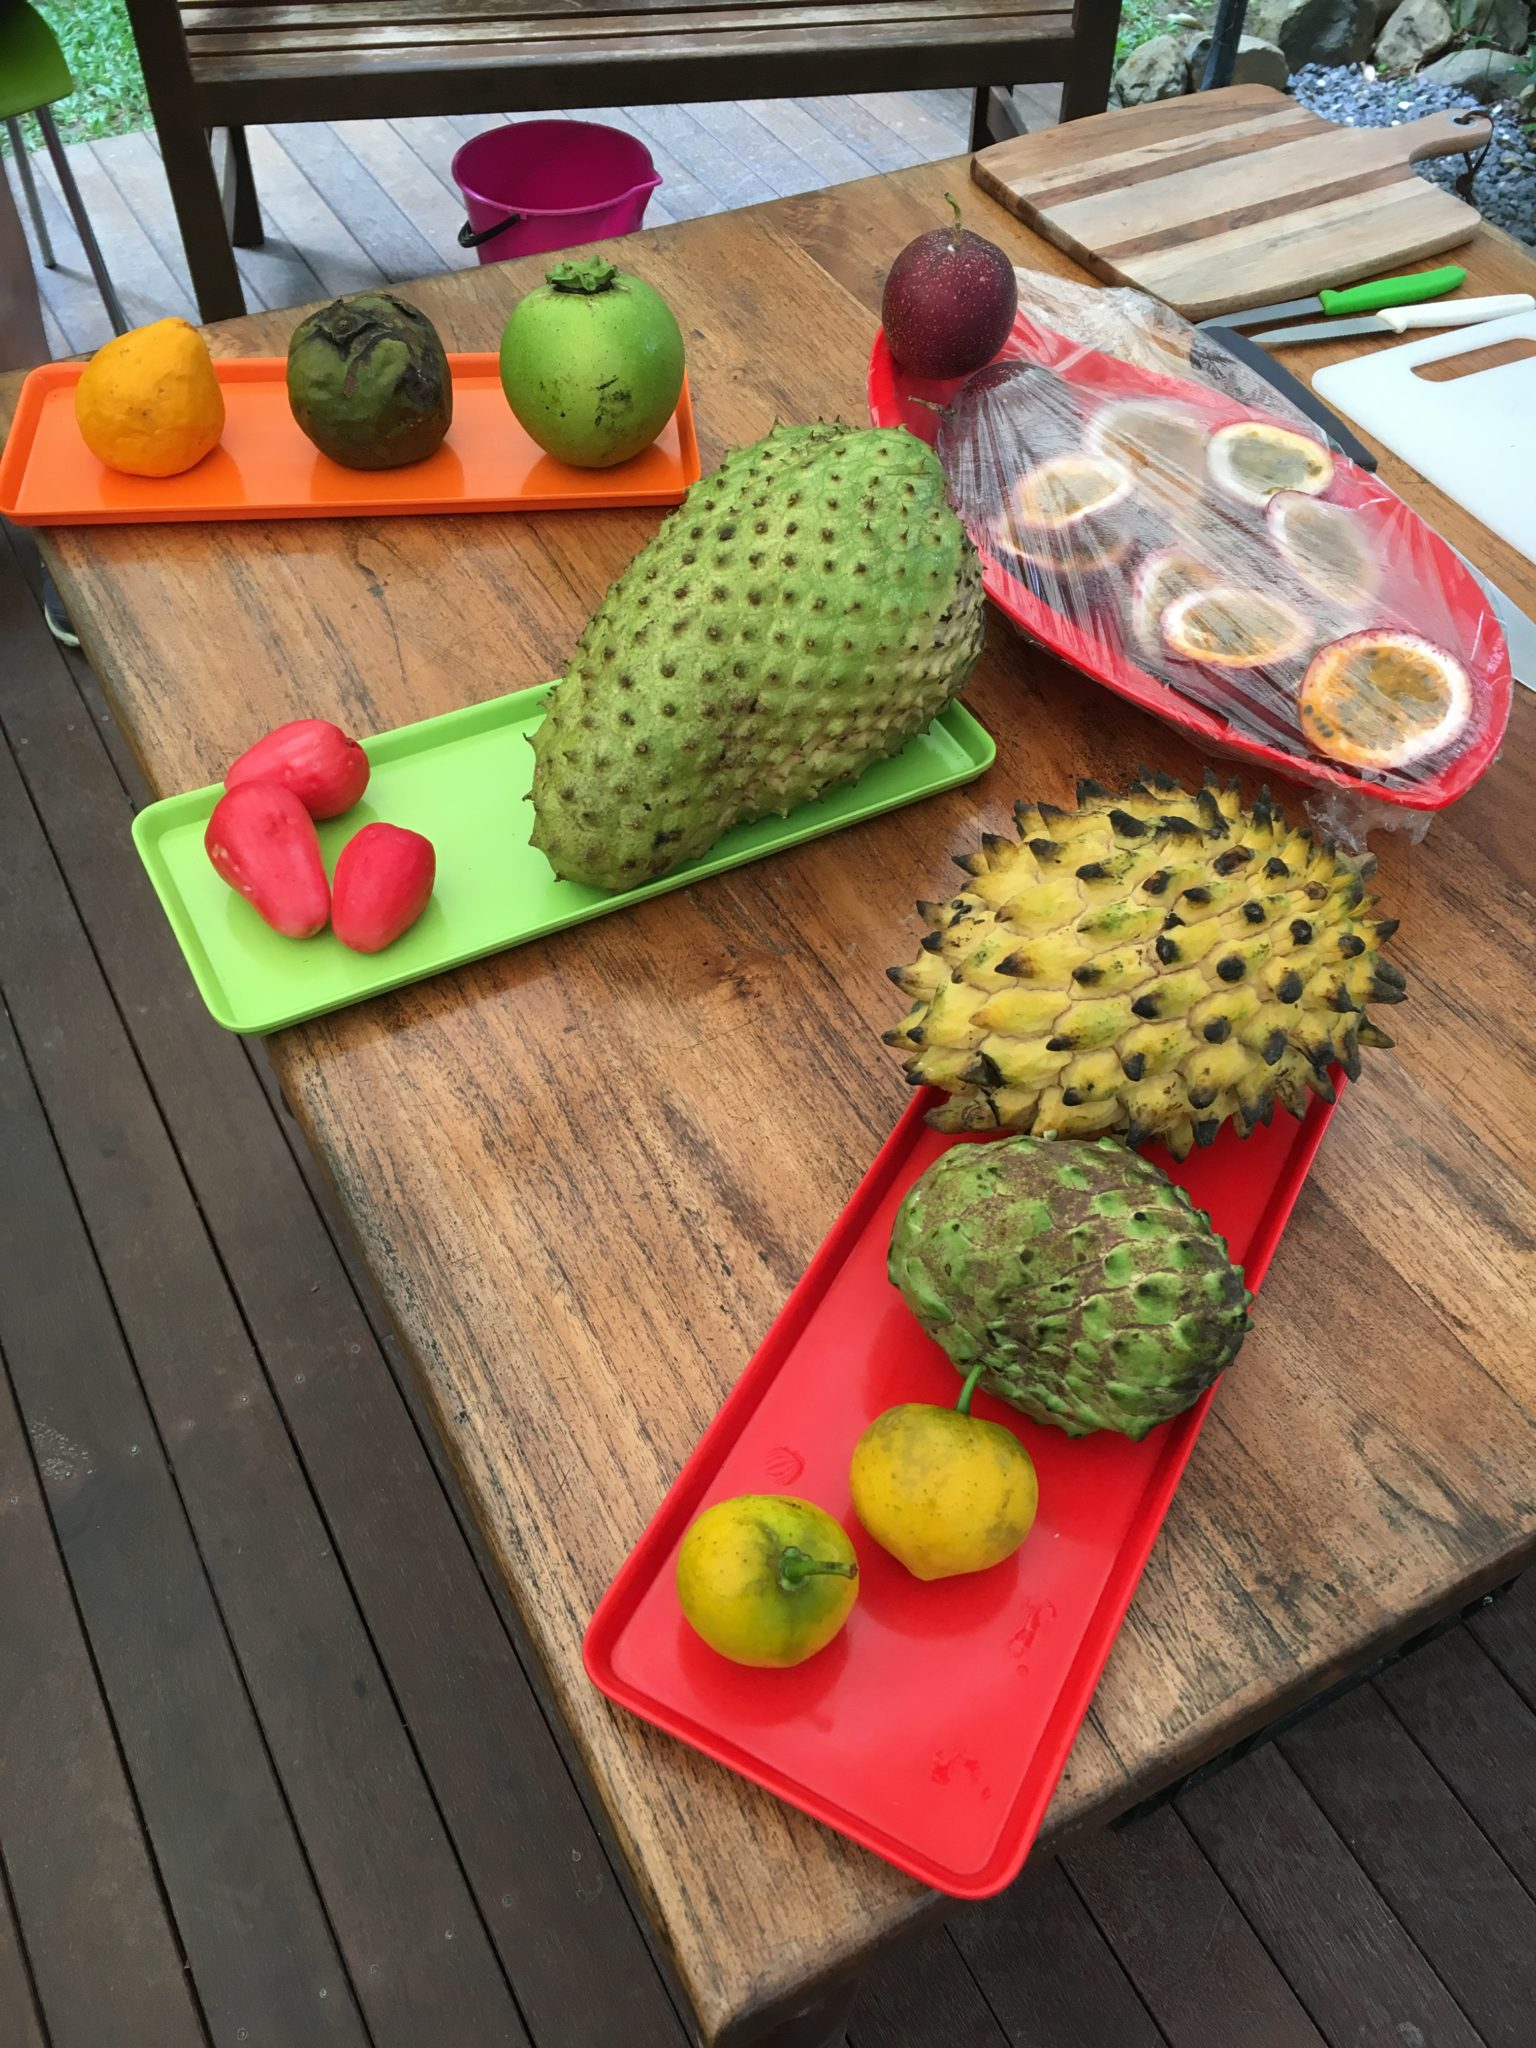 trying exotic fruits living expat life in Australia